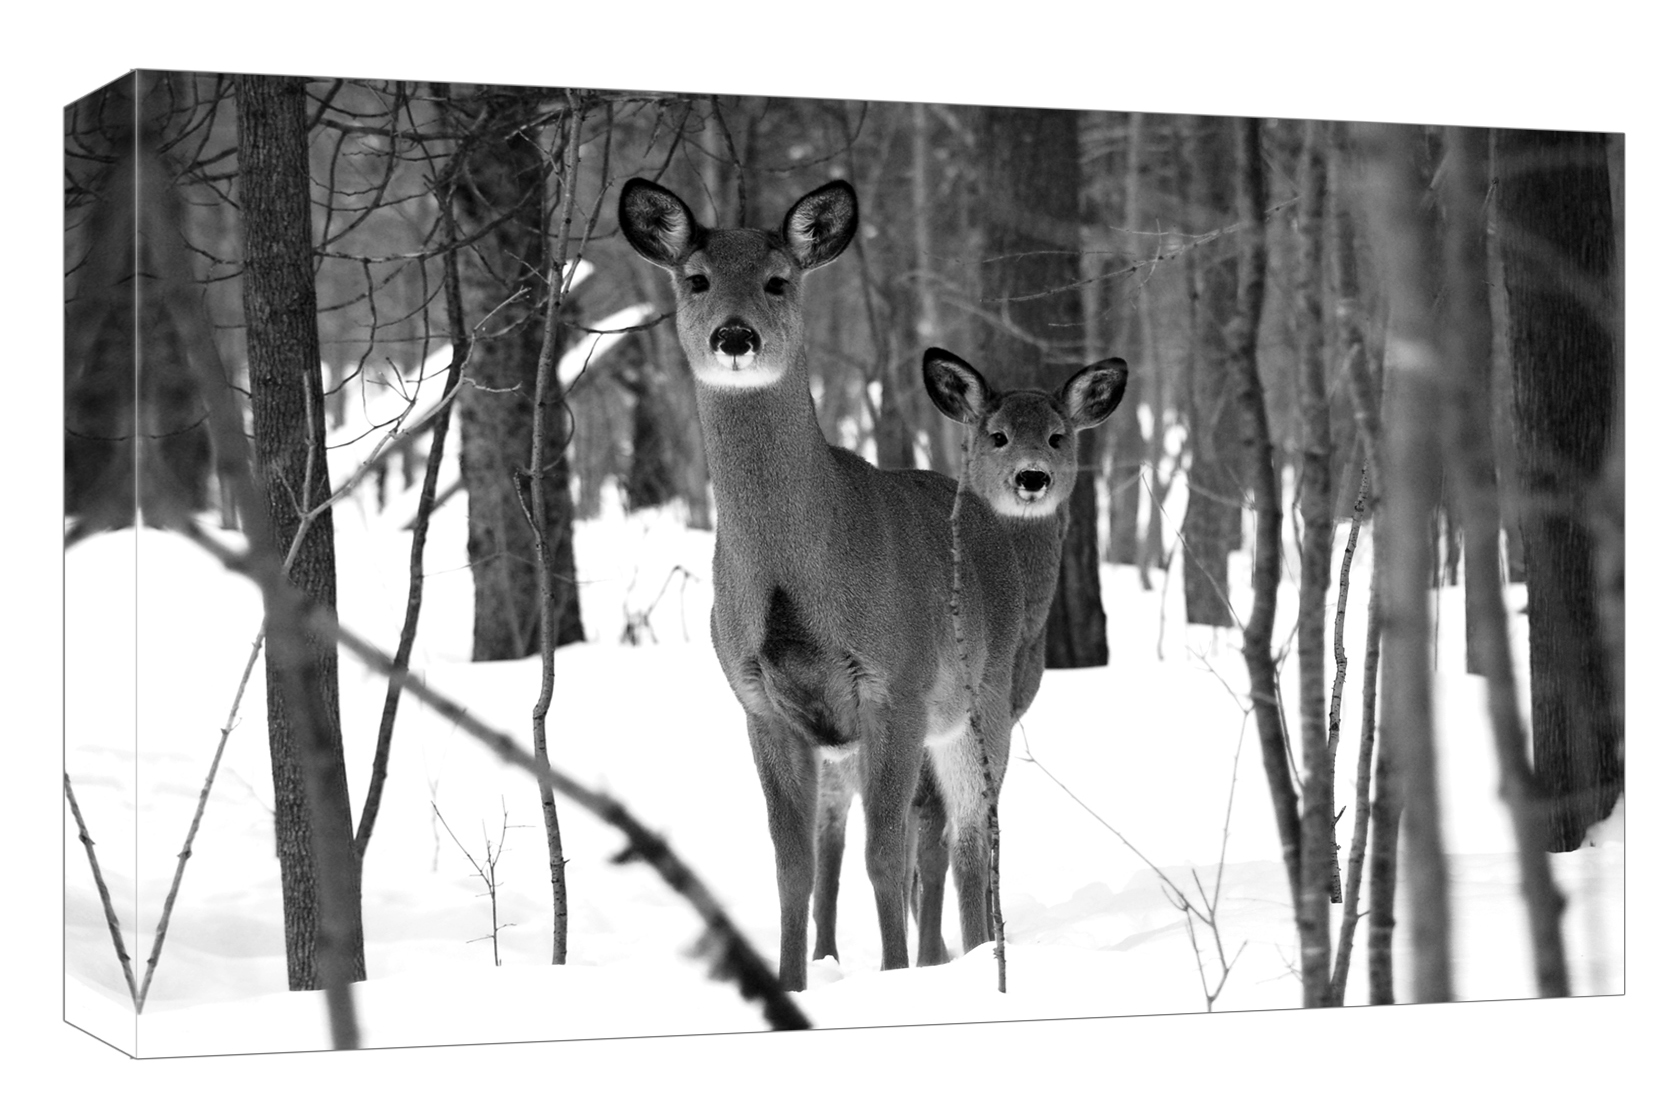 Whitetail Deer, West Greenbelt, February 2014, 18 x 12, $200. Photo: Amanda Sage